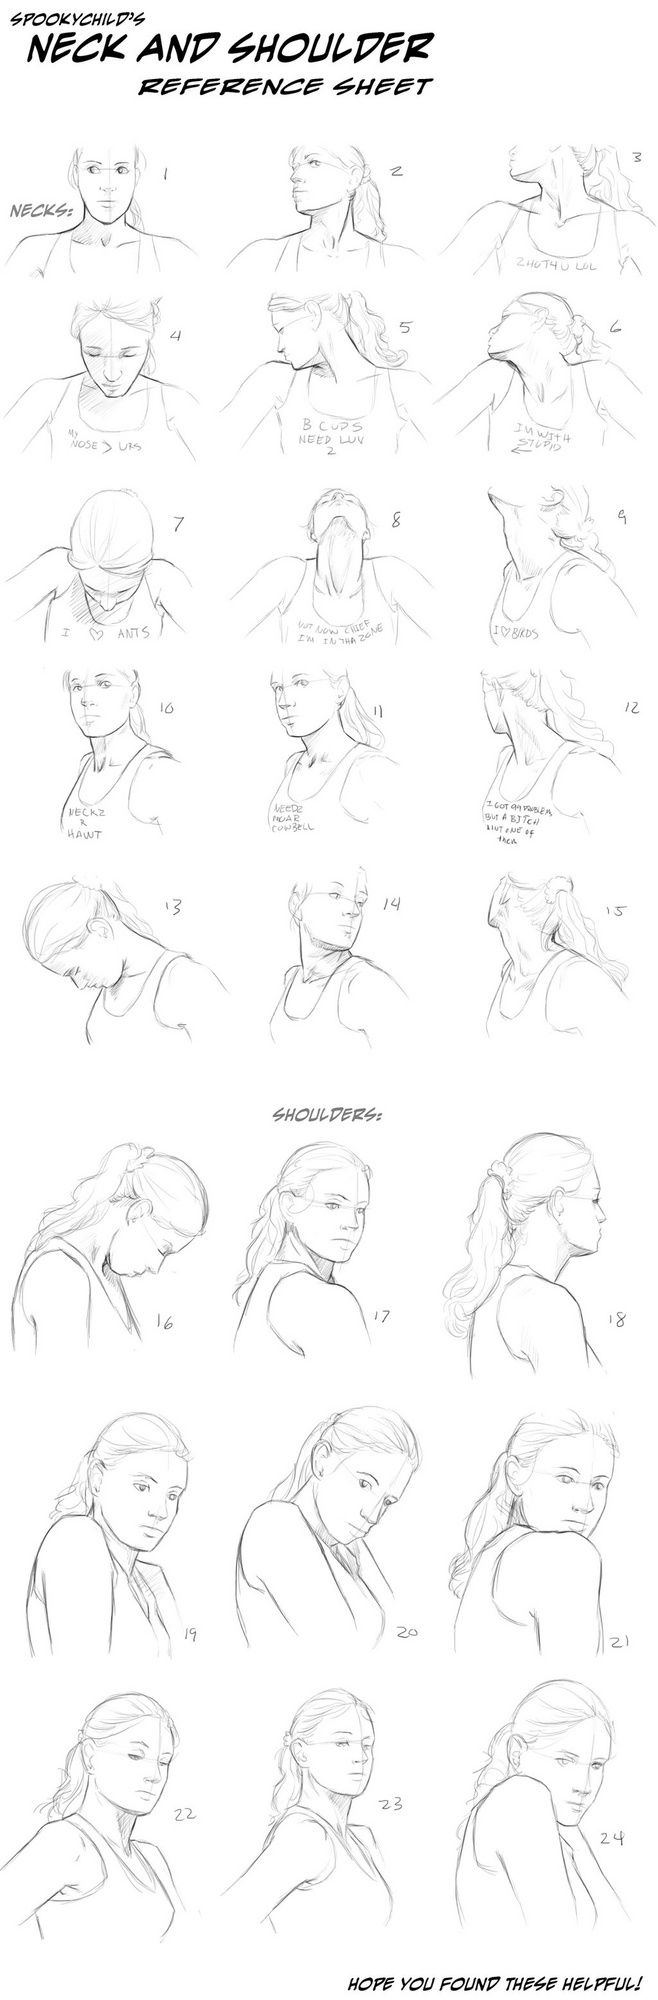 neck and shoulder reference